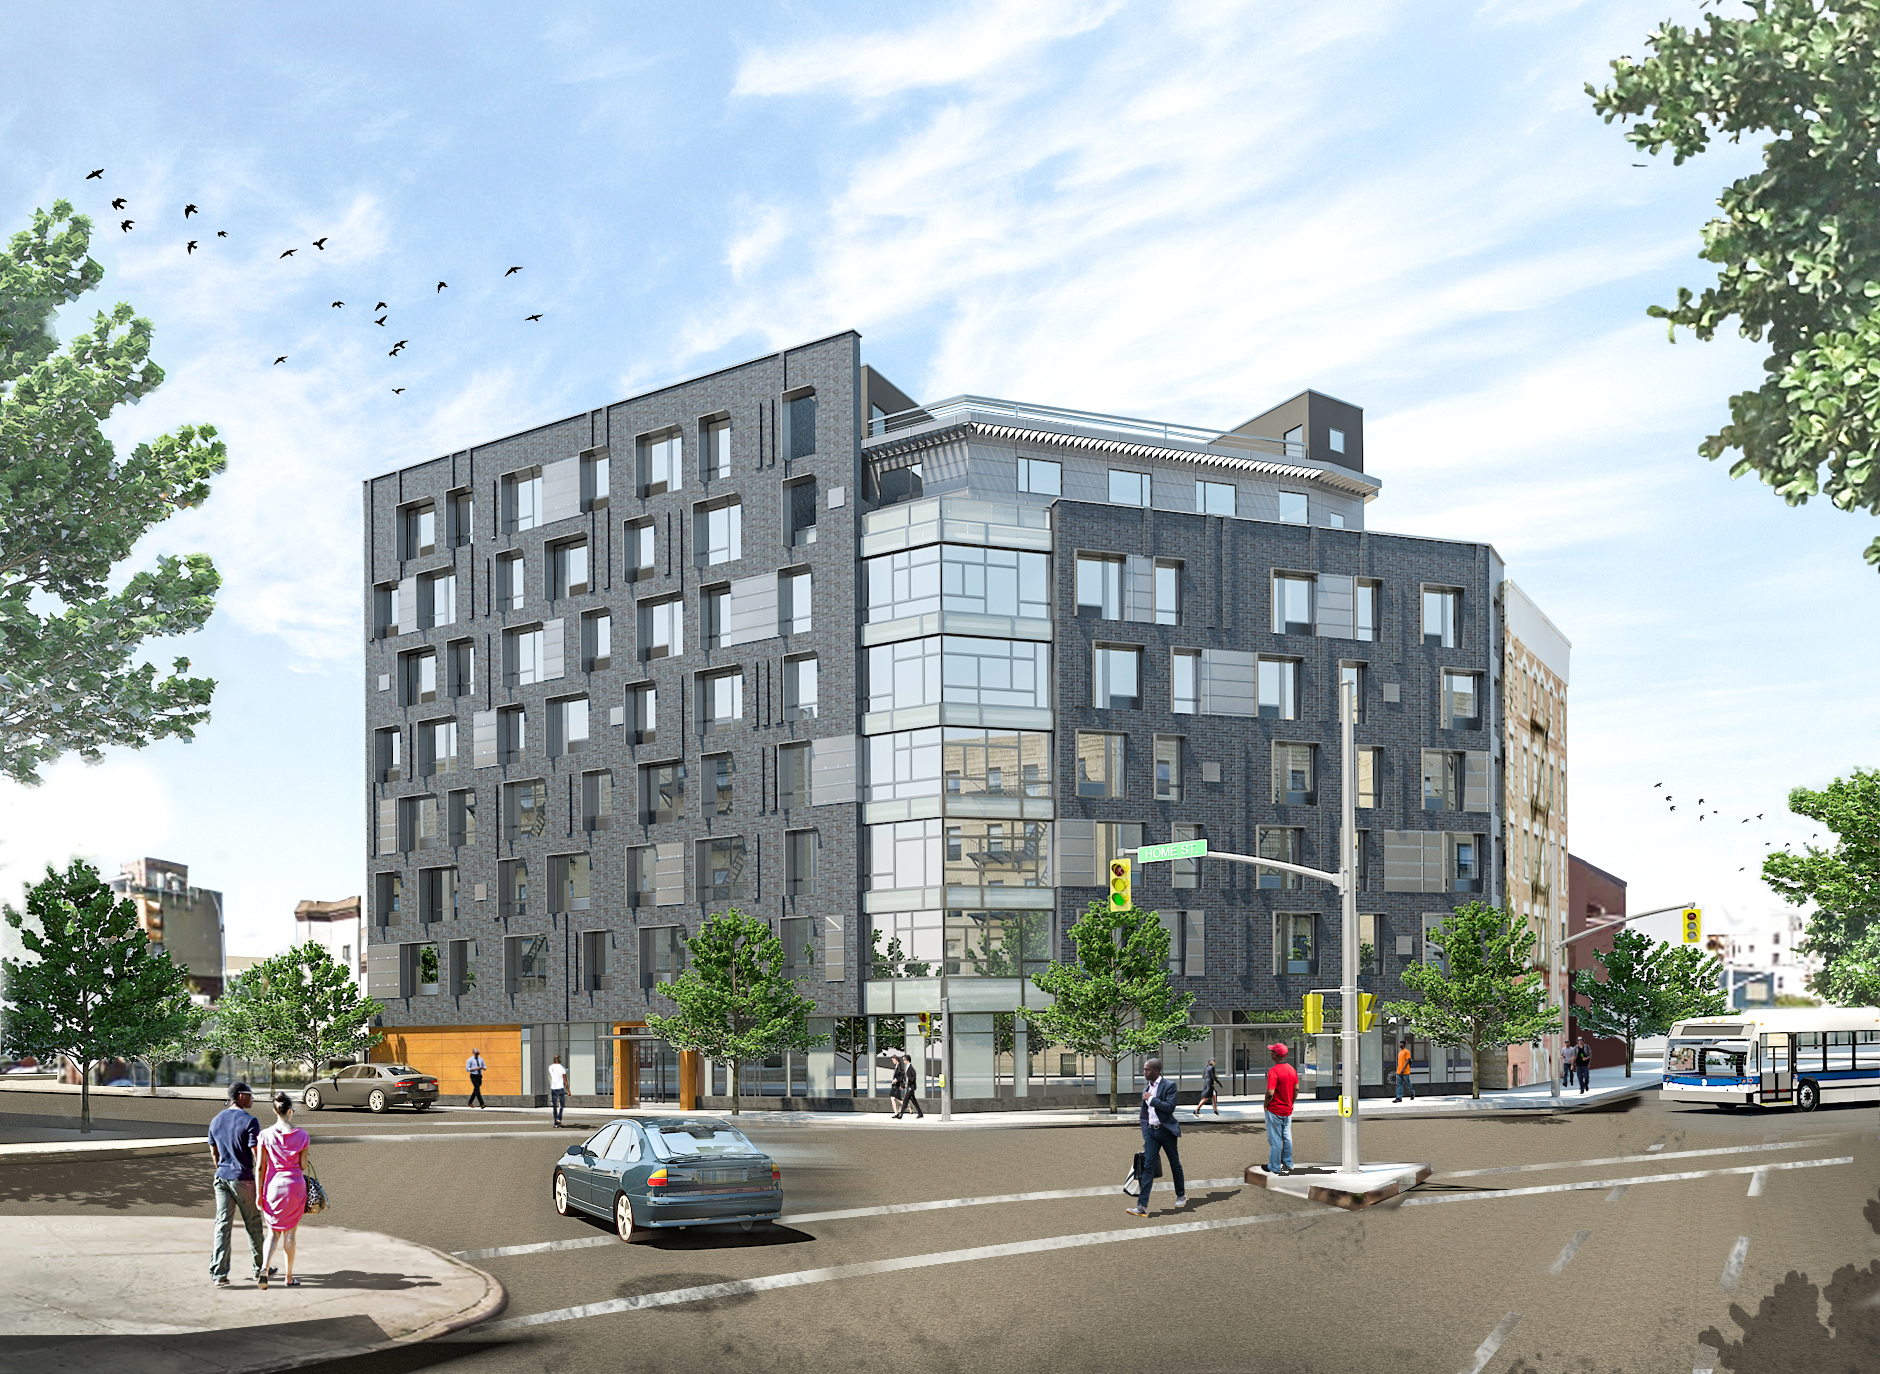 1017 Home Street, rendering by Body Lawson Associates